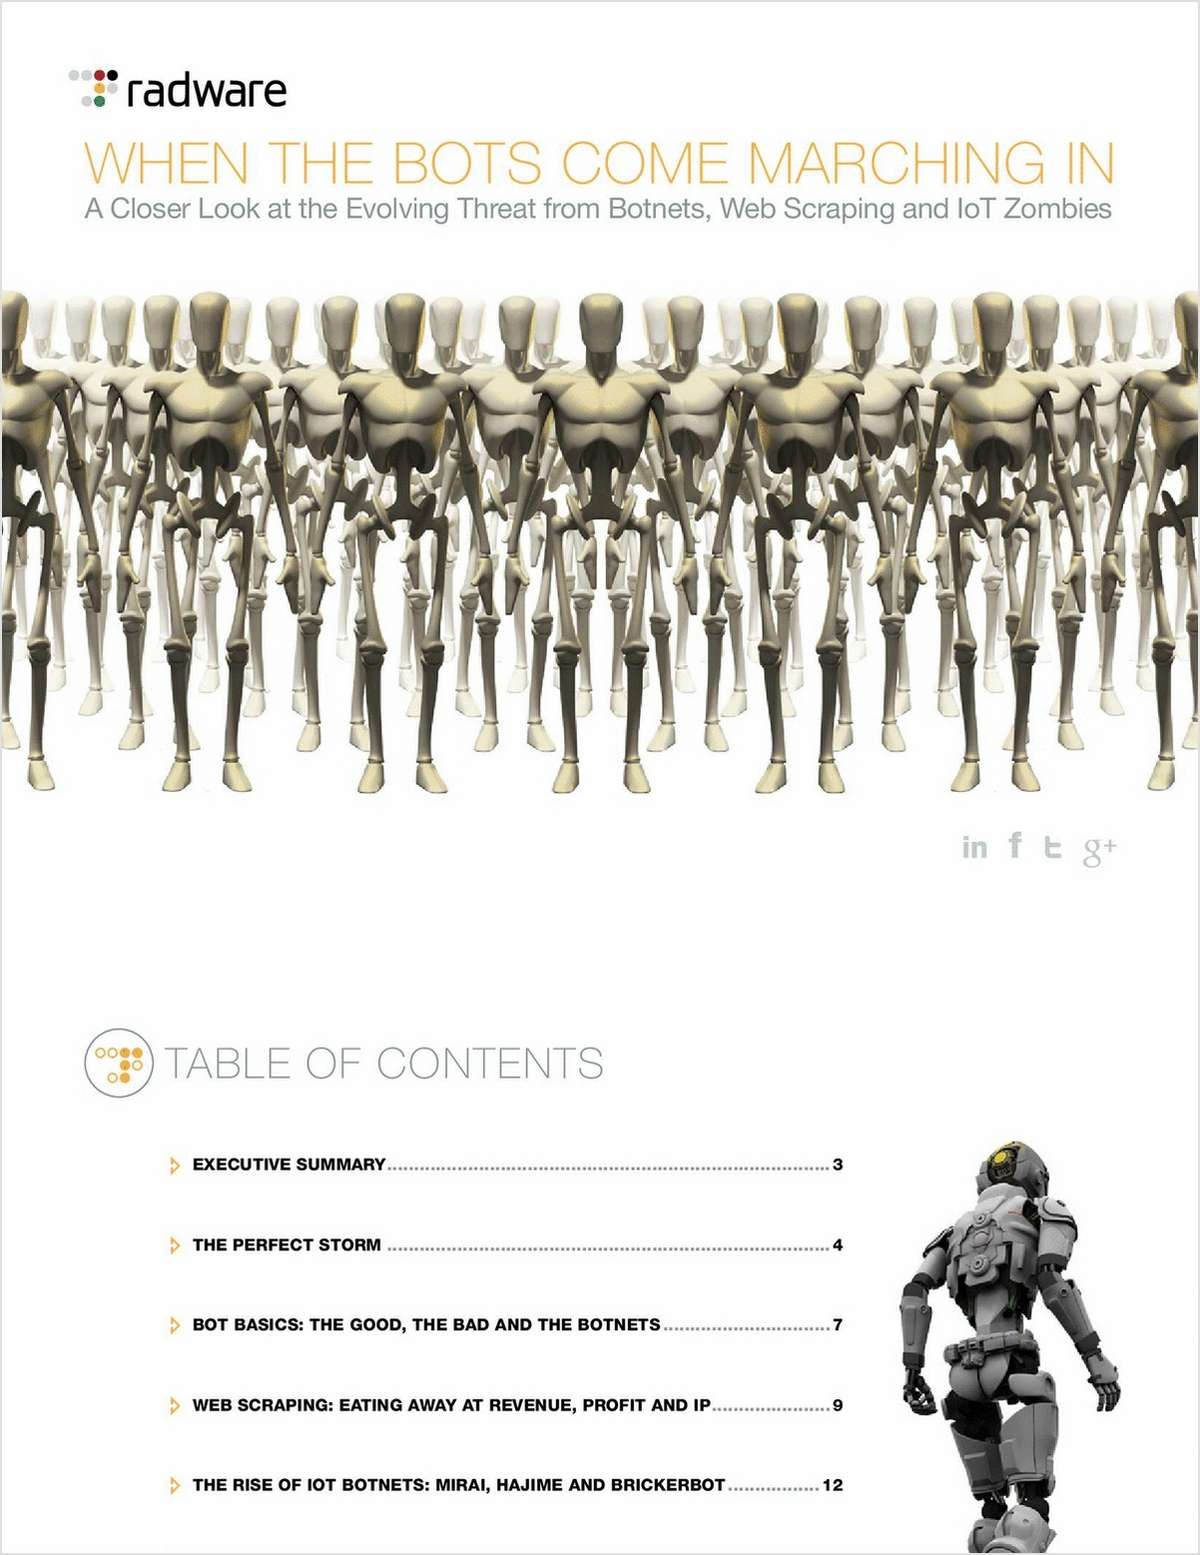 When the Bots Come Marching In, a Closer Look at Evolving Threats from Botnets, Web Scraping & IoT Zombies